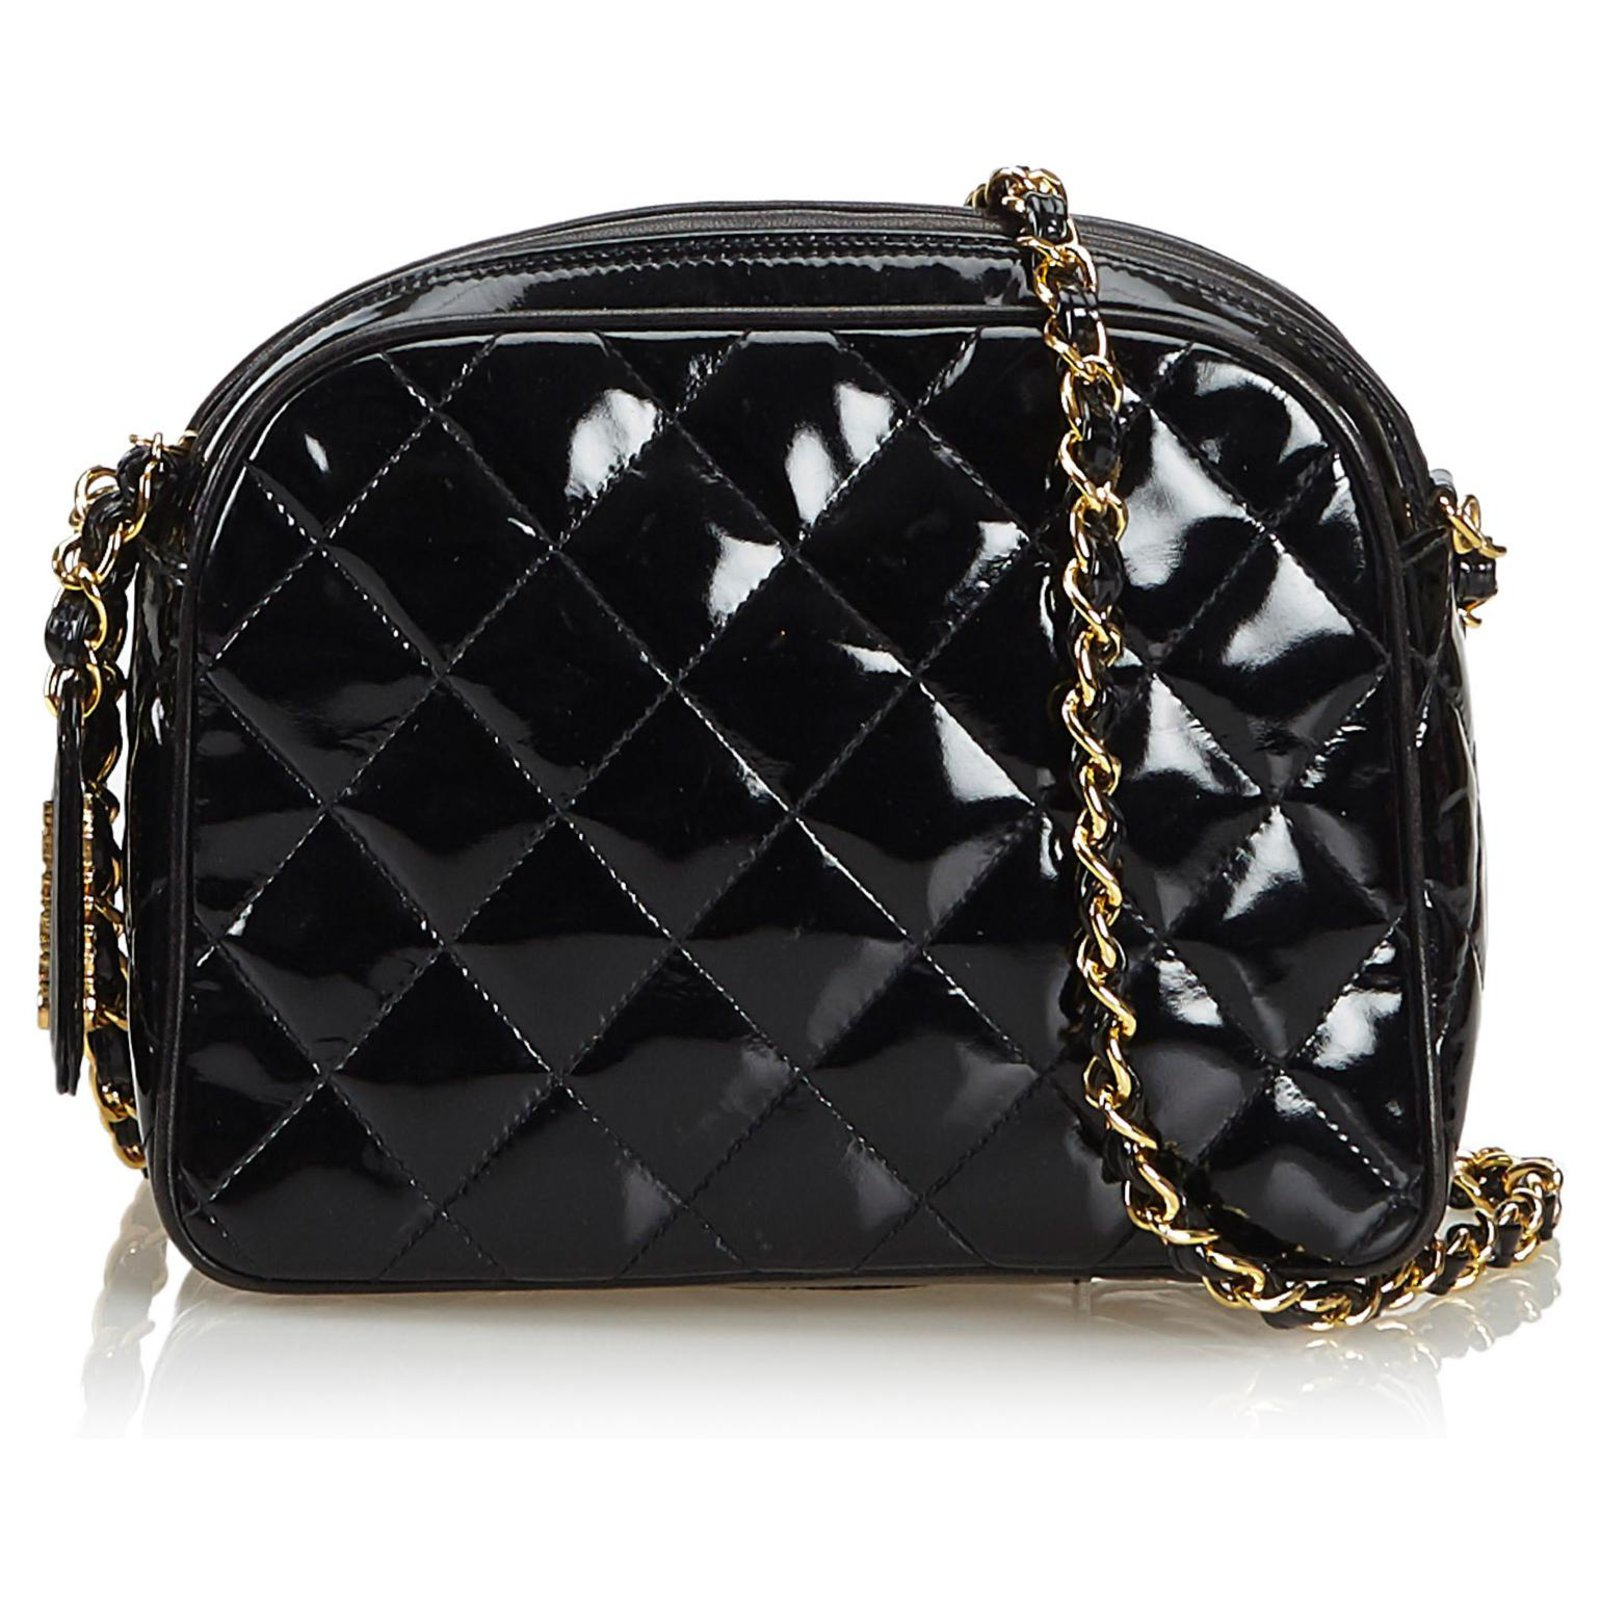 734d096dd931f7 Chanel Patent Leather Quilted Handbag - Foto Handbag All Collections ...